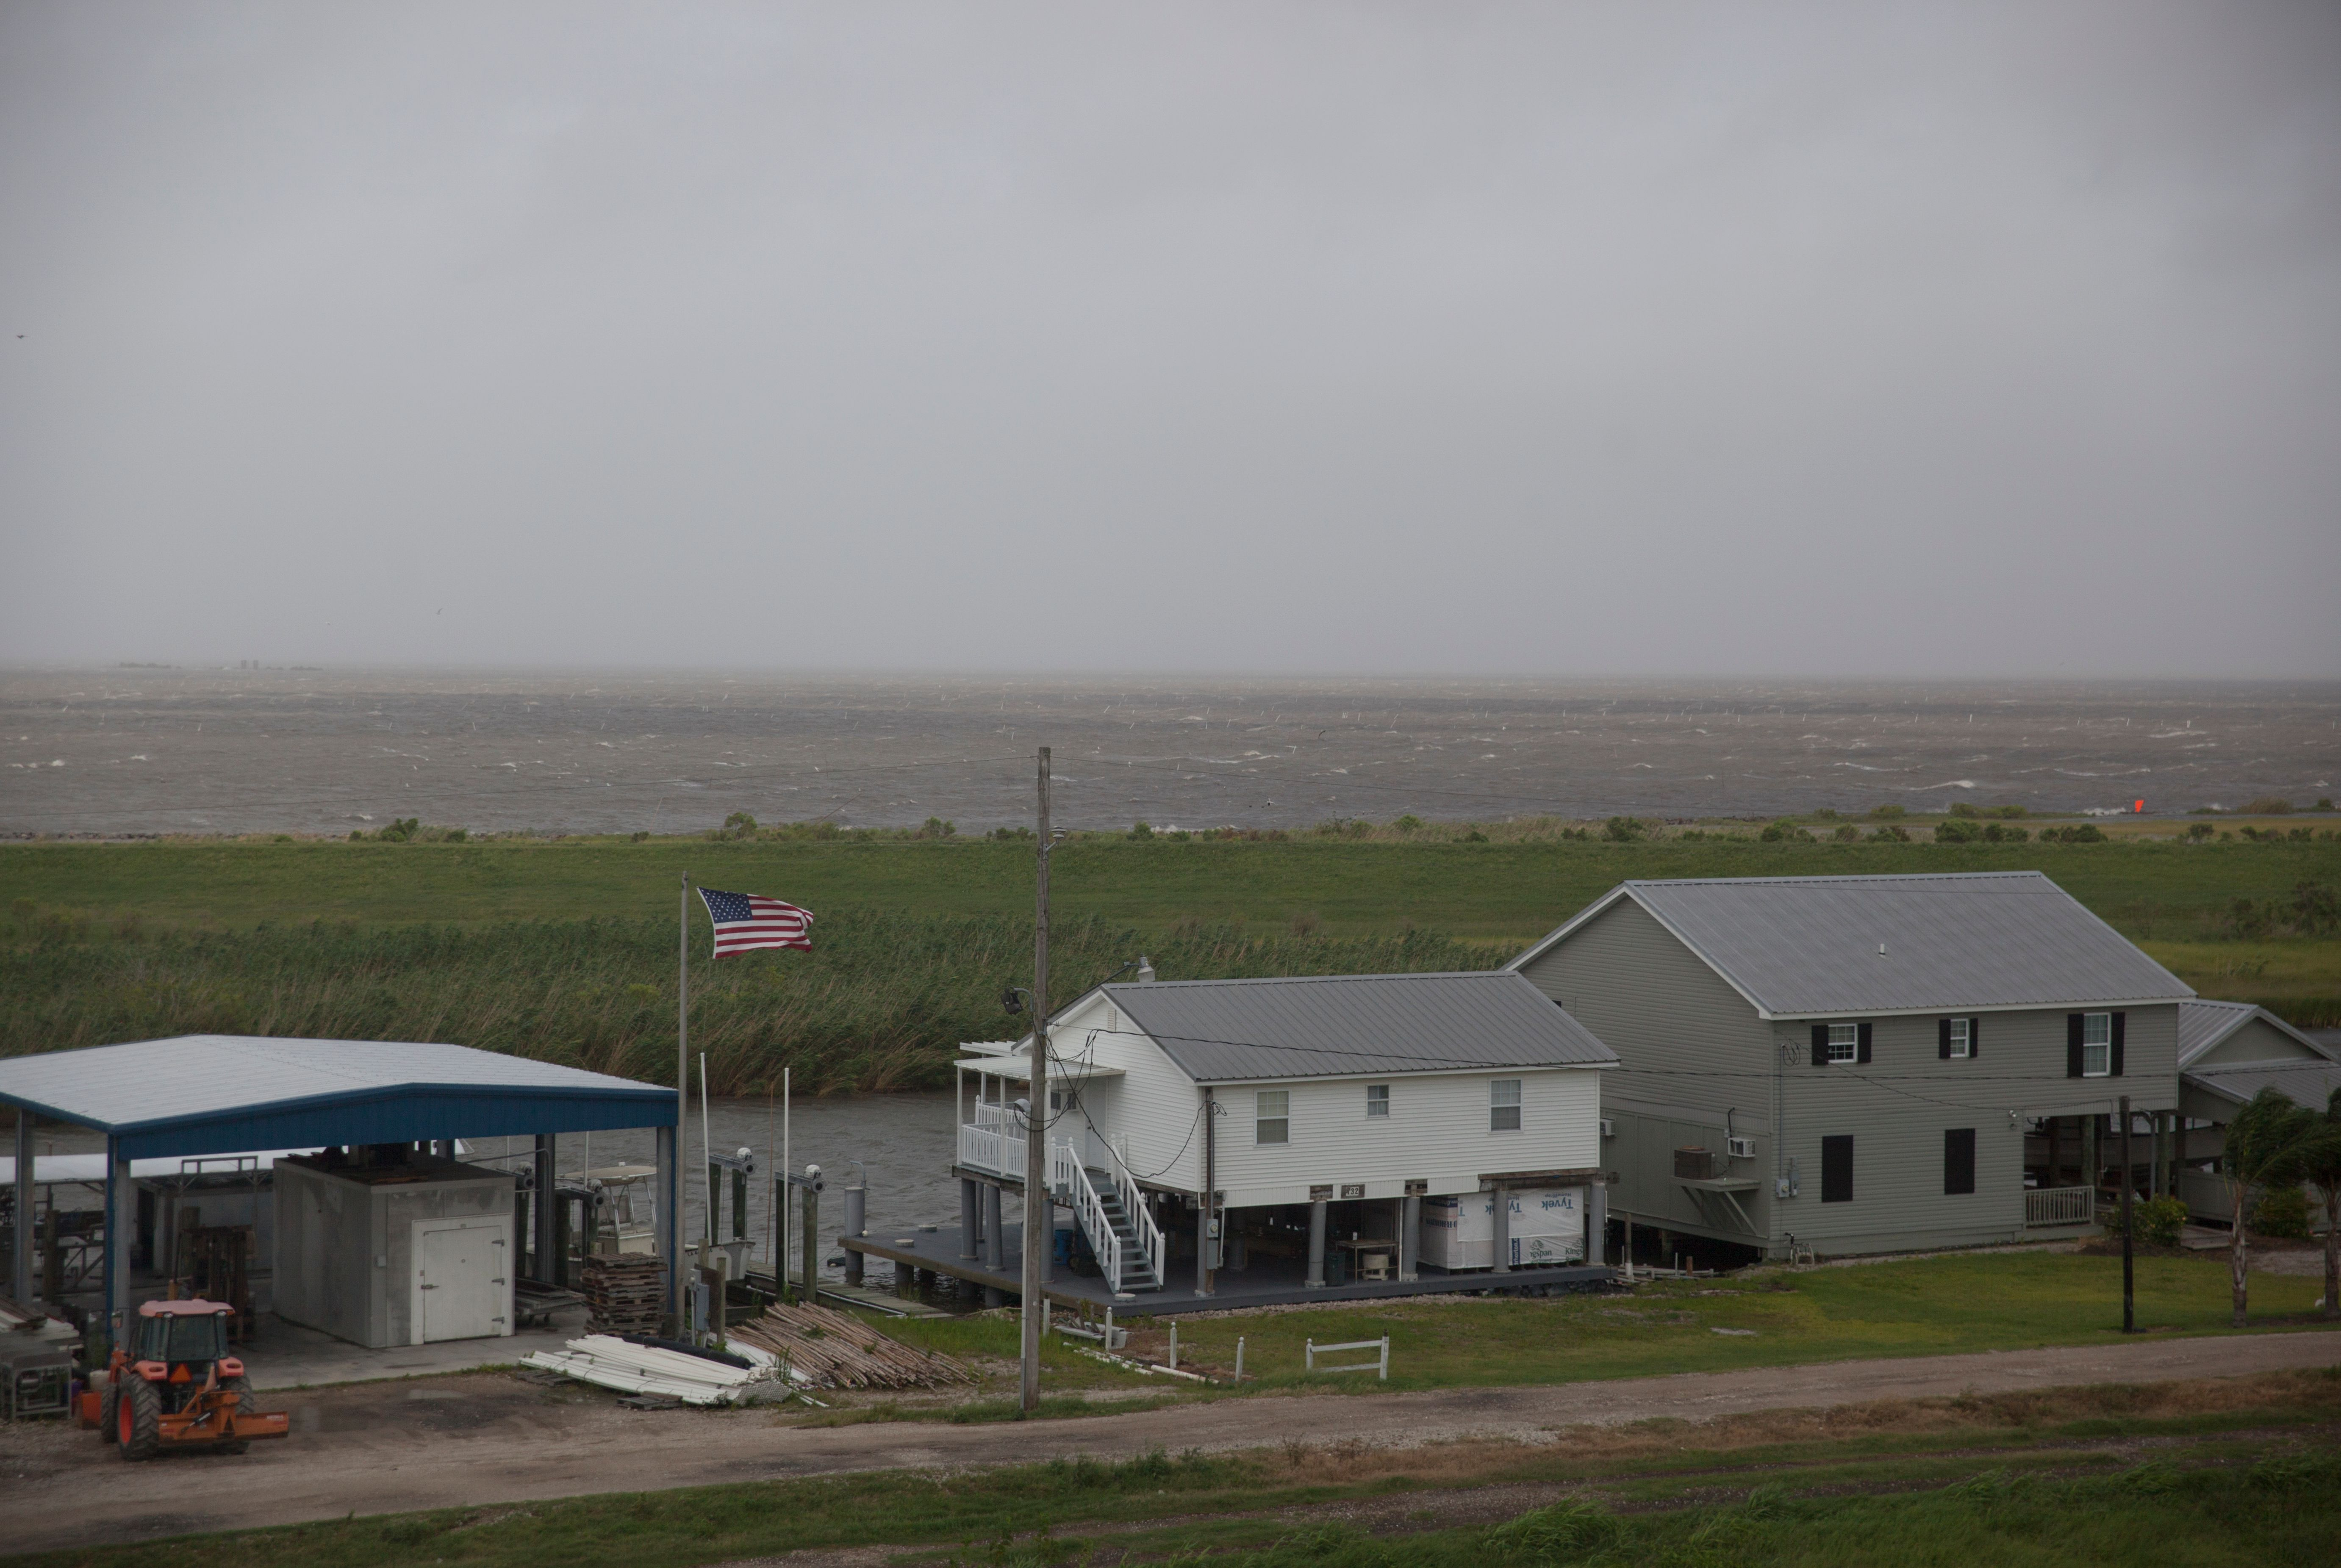 A US national flag flutters in high winds in Plaquemines Parish, Louisiana on July 12, 2019, ahead of the arrival of Tropical Storm Barry.